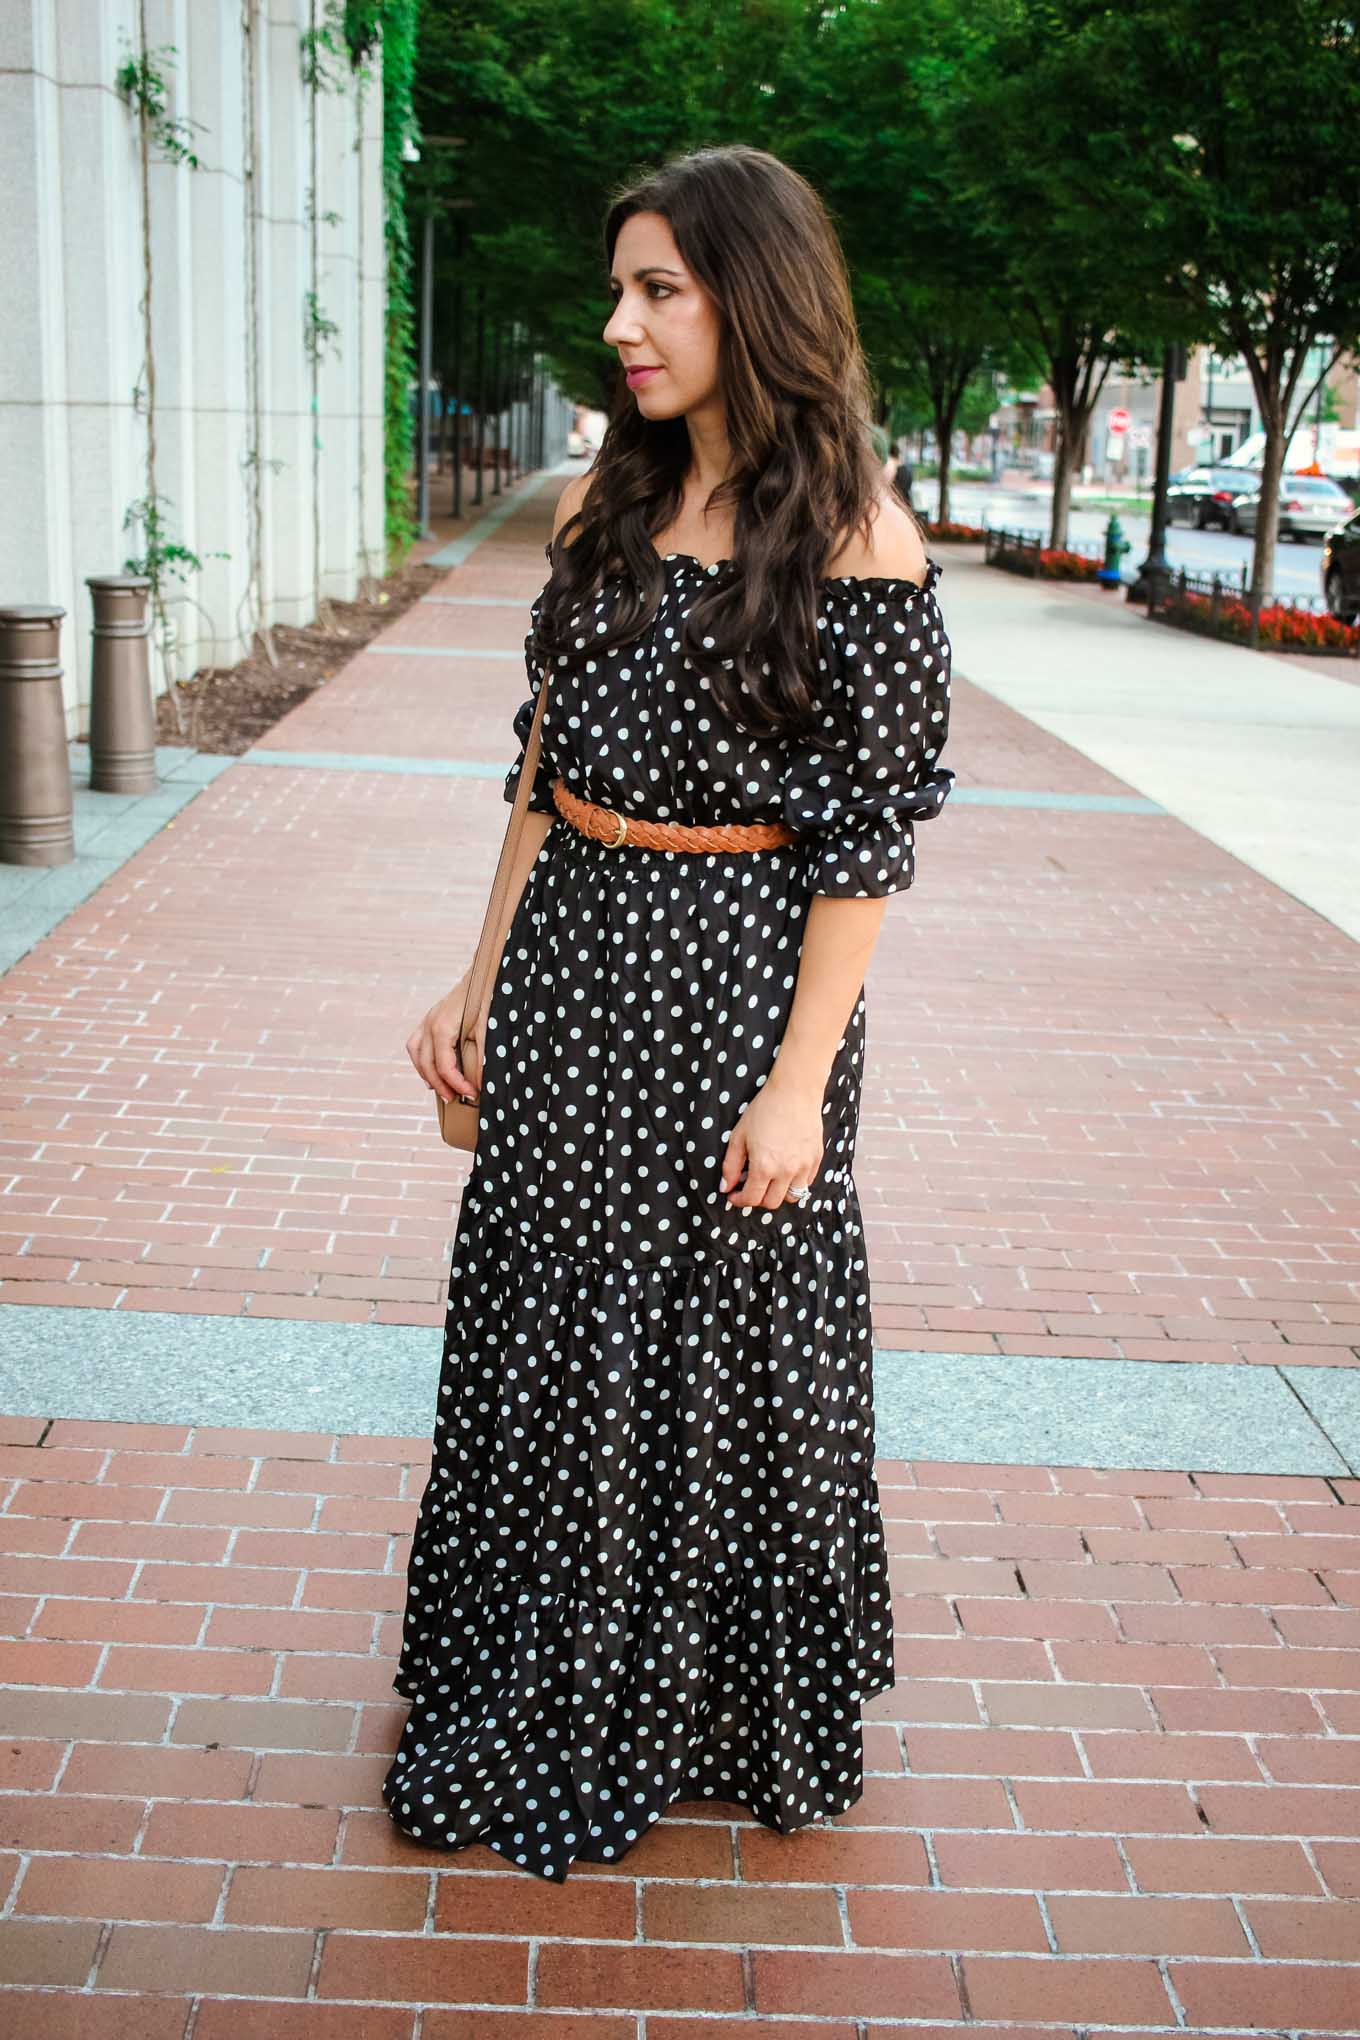 lifestyle blogger Roxanne of Glass of Glam wearing a Shein Maxi dress and Lux Beauty Club hair extensions - Maxi Hair Extensions by popular Chicago fashion blogger Glass of Glam